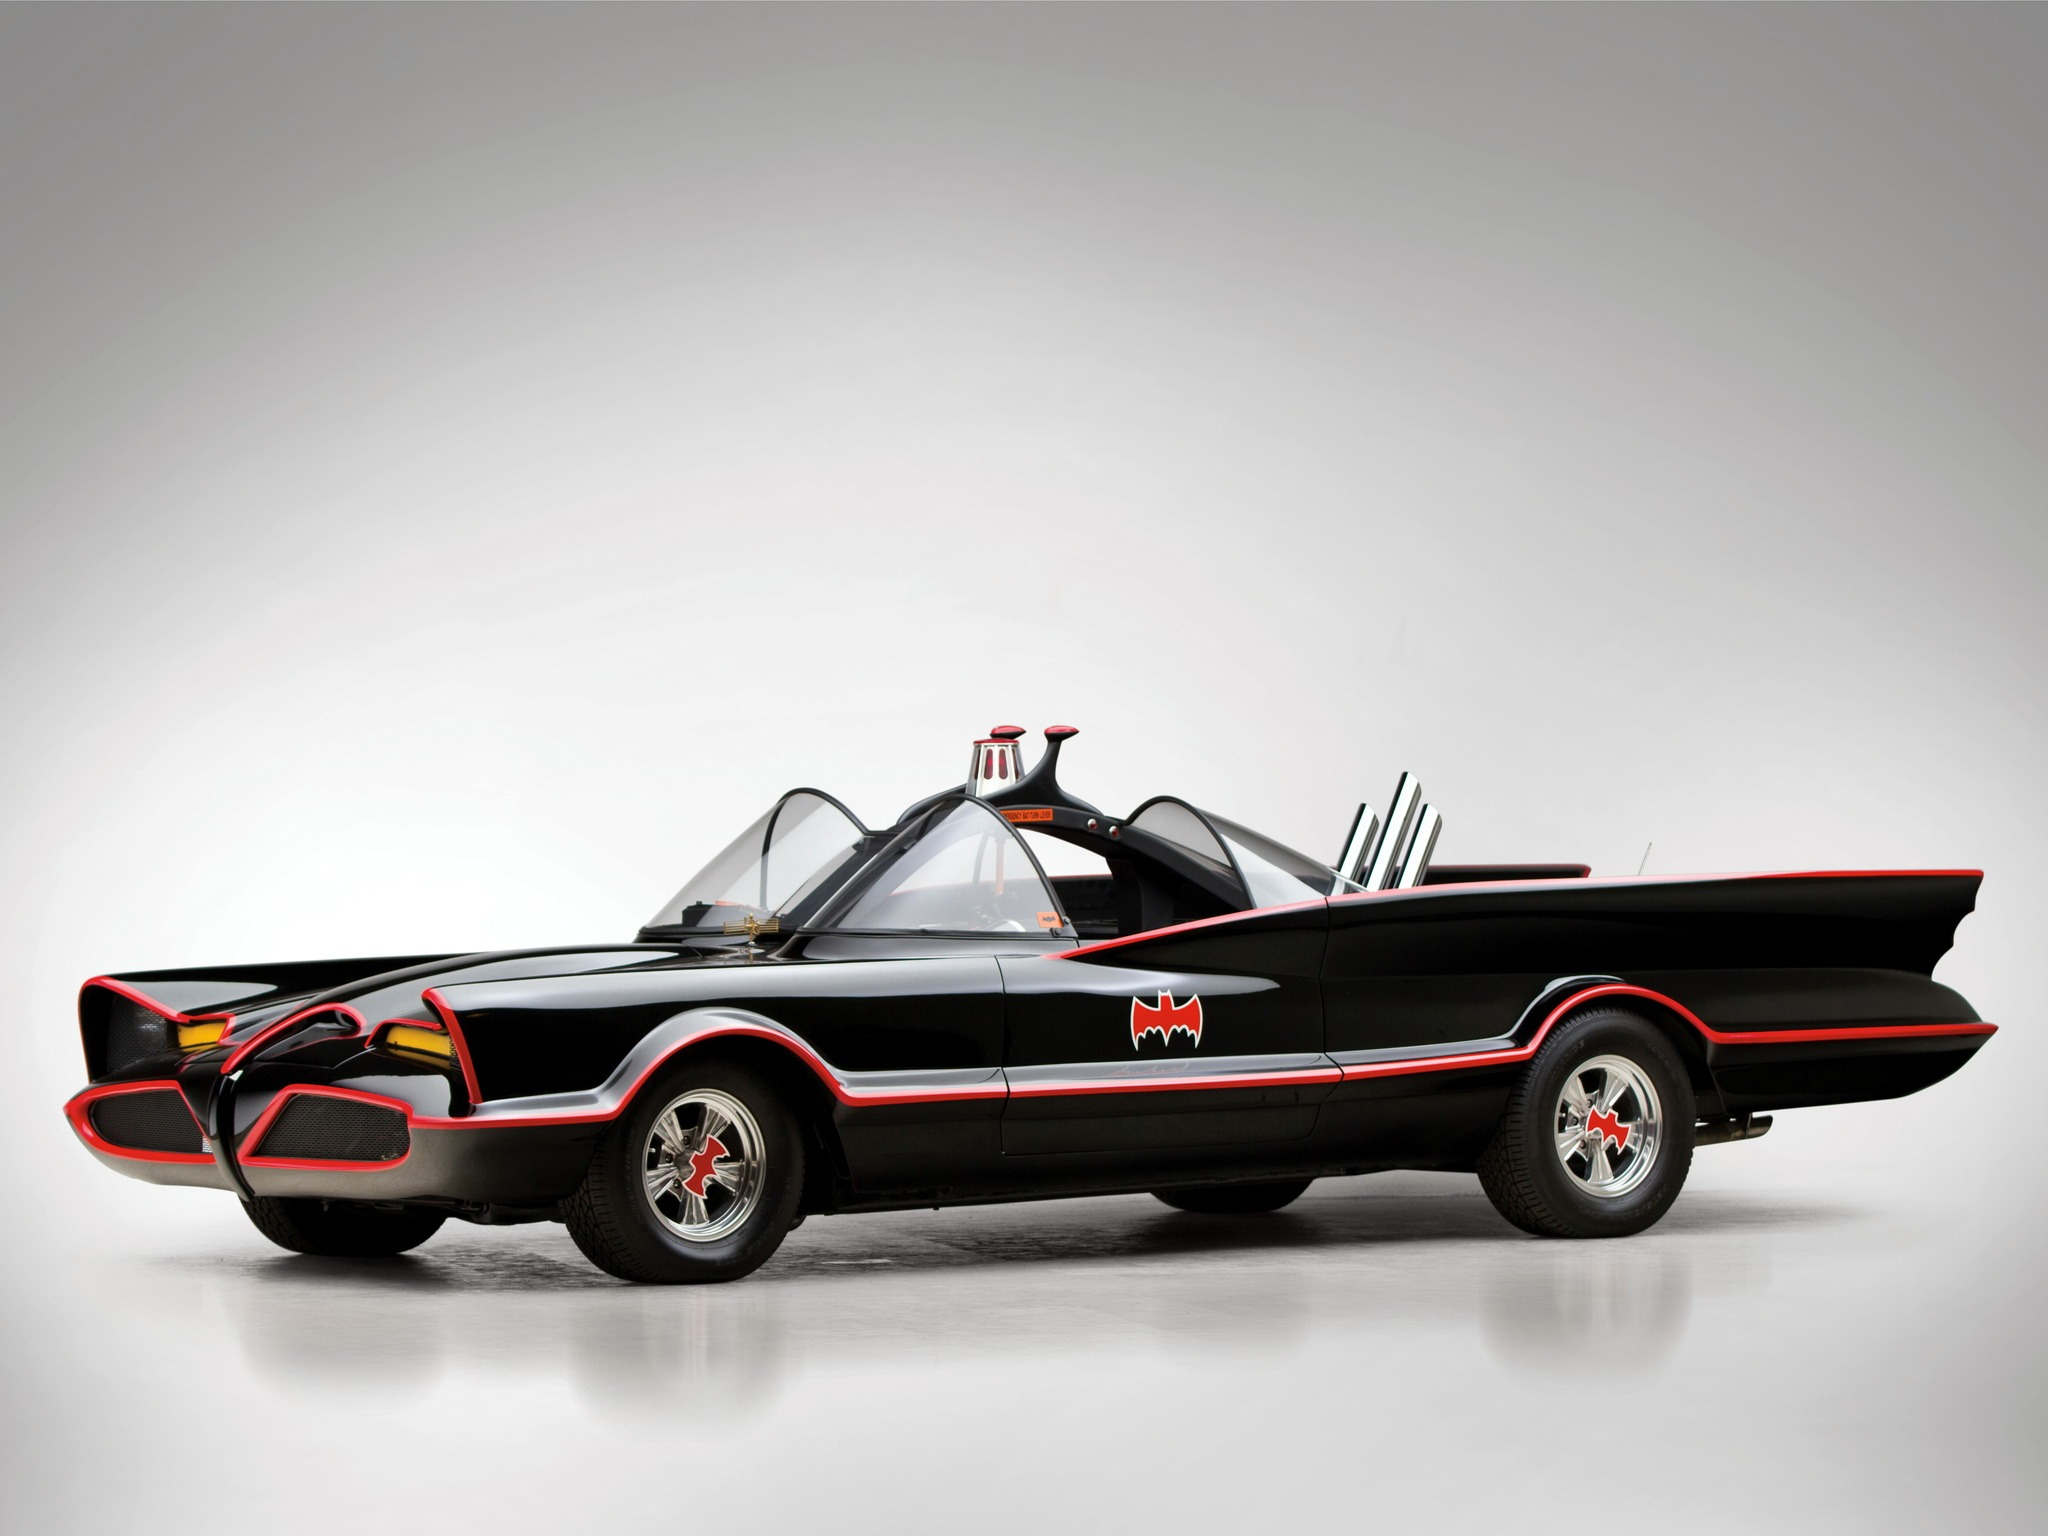 Lincoln Futura Batmobile By Barris Kustom 1966 Old Concept Cars